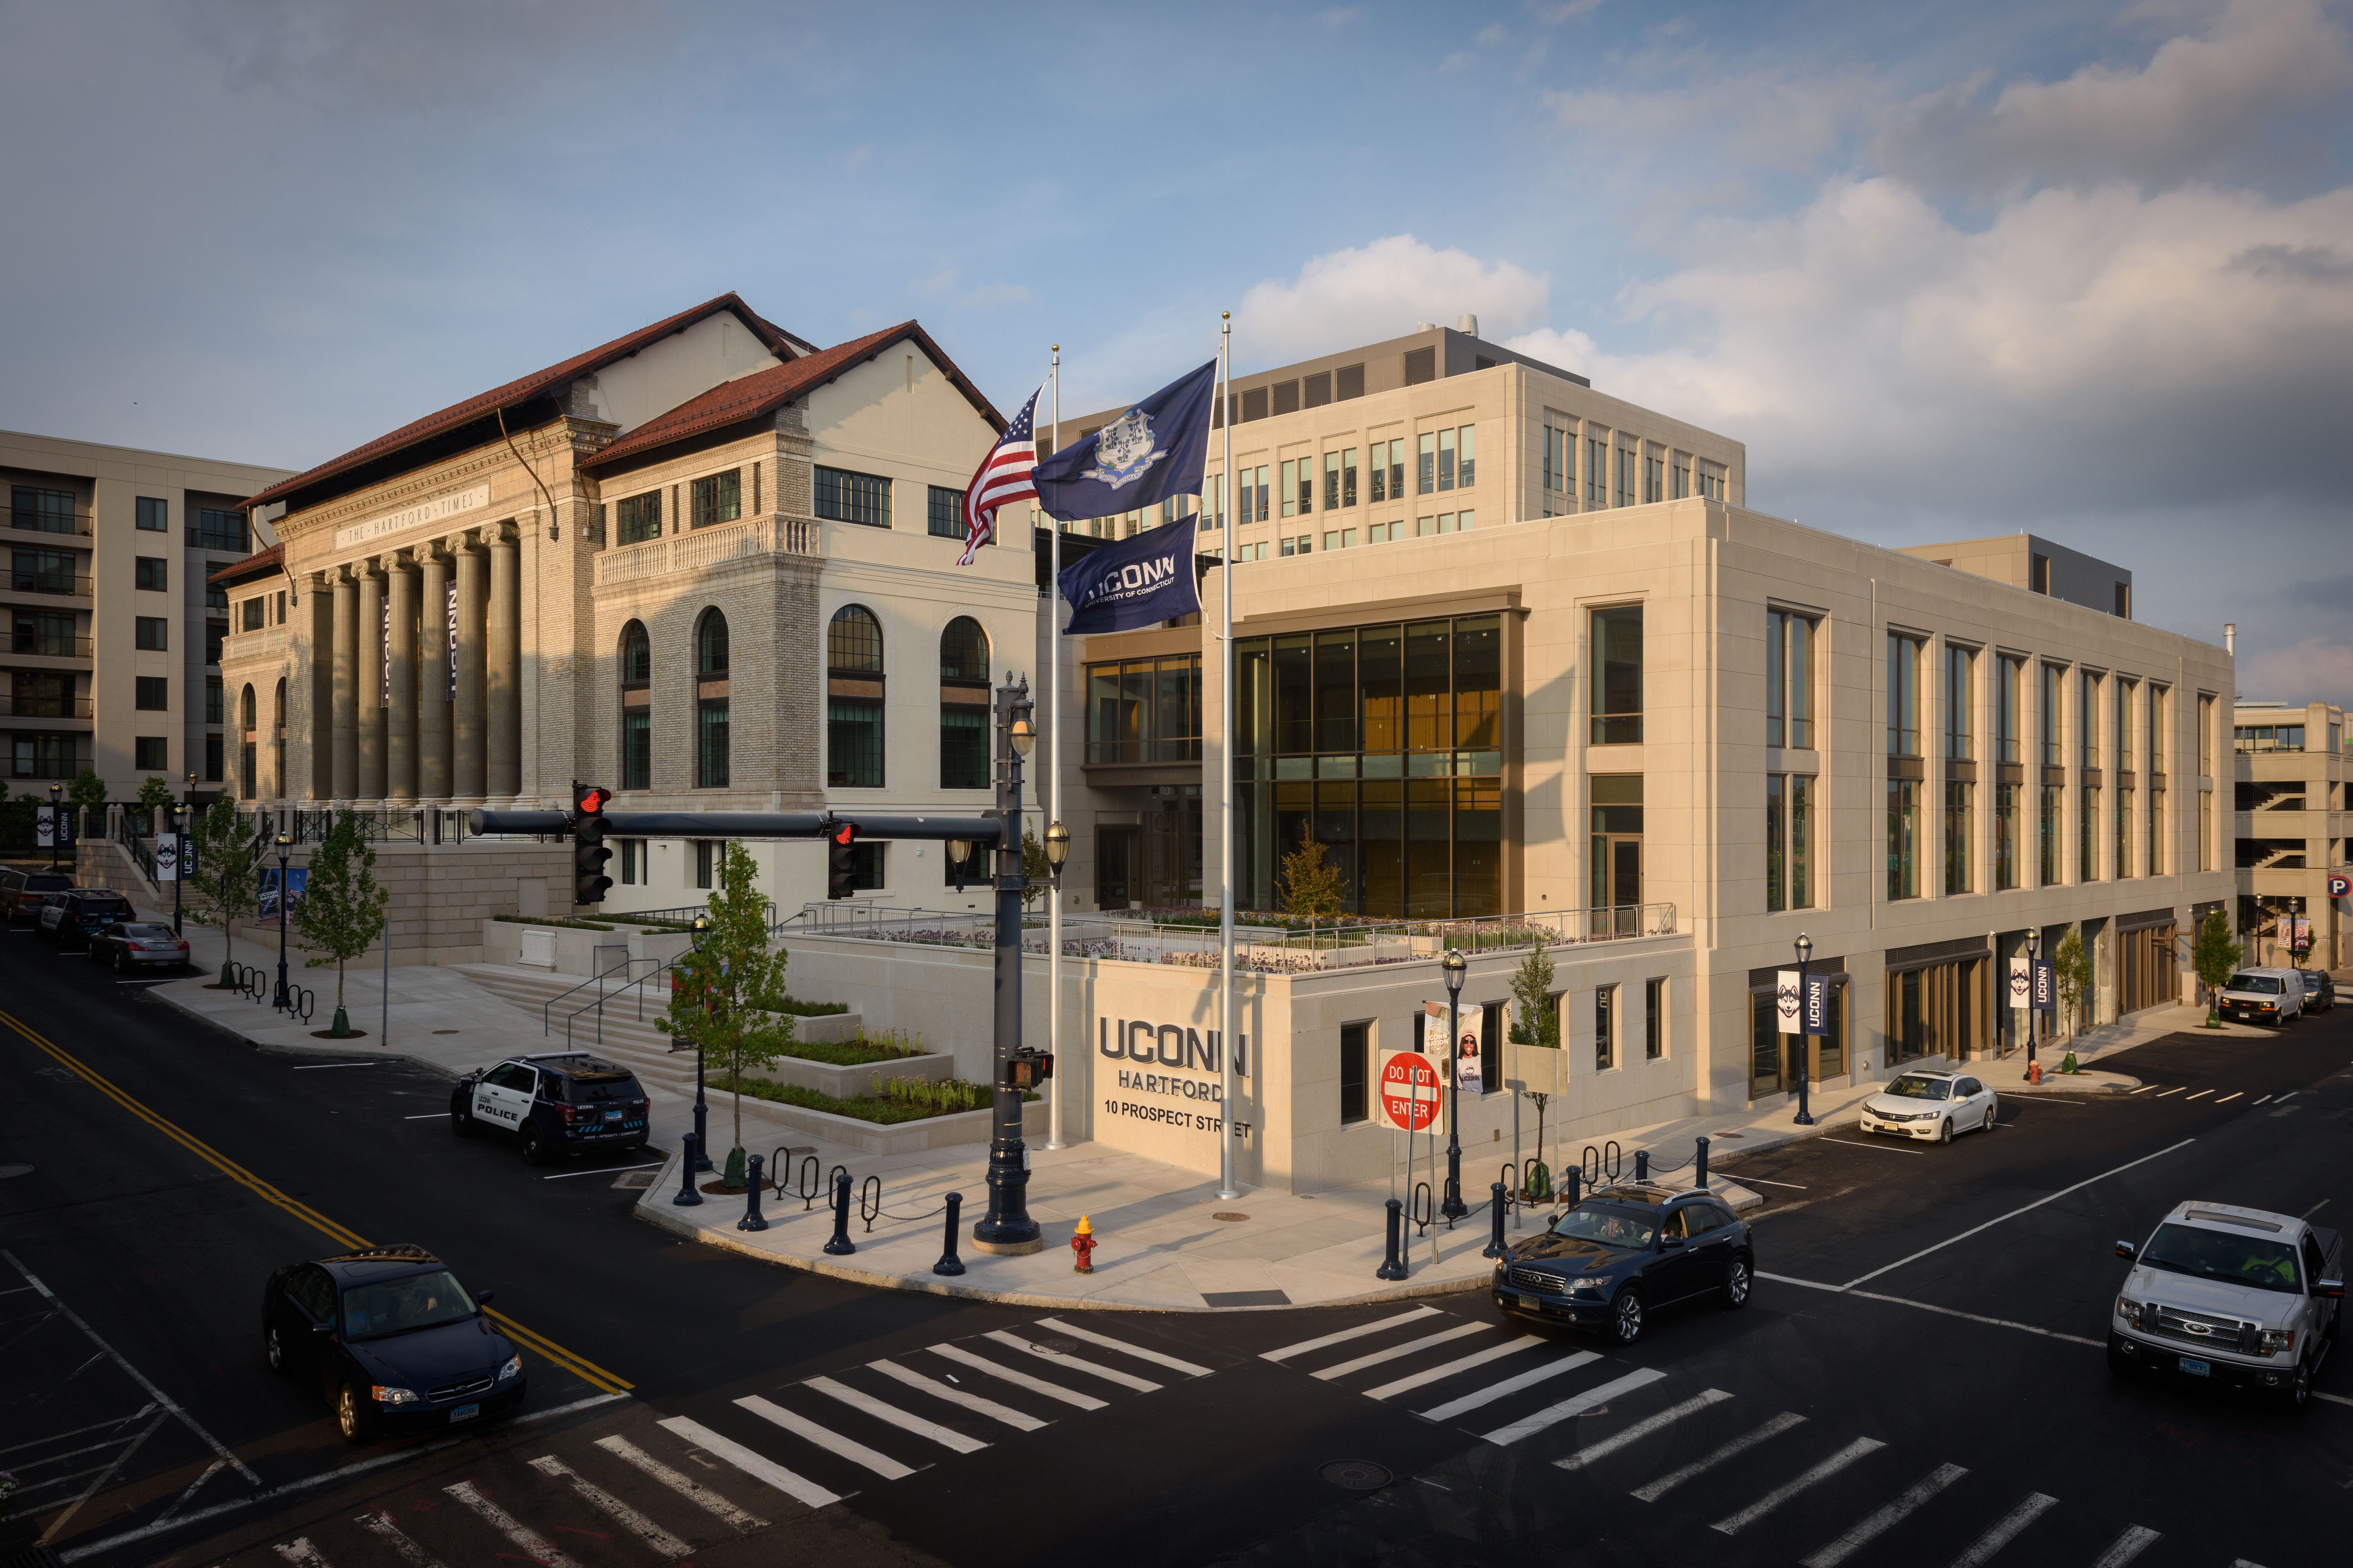 uconn opens new downtown hartford campus uconn today